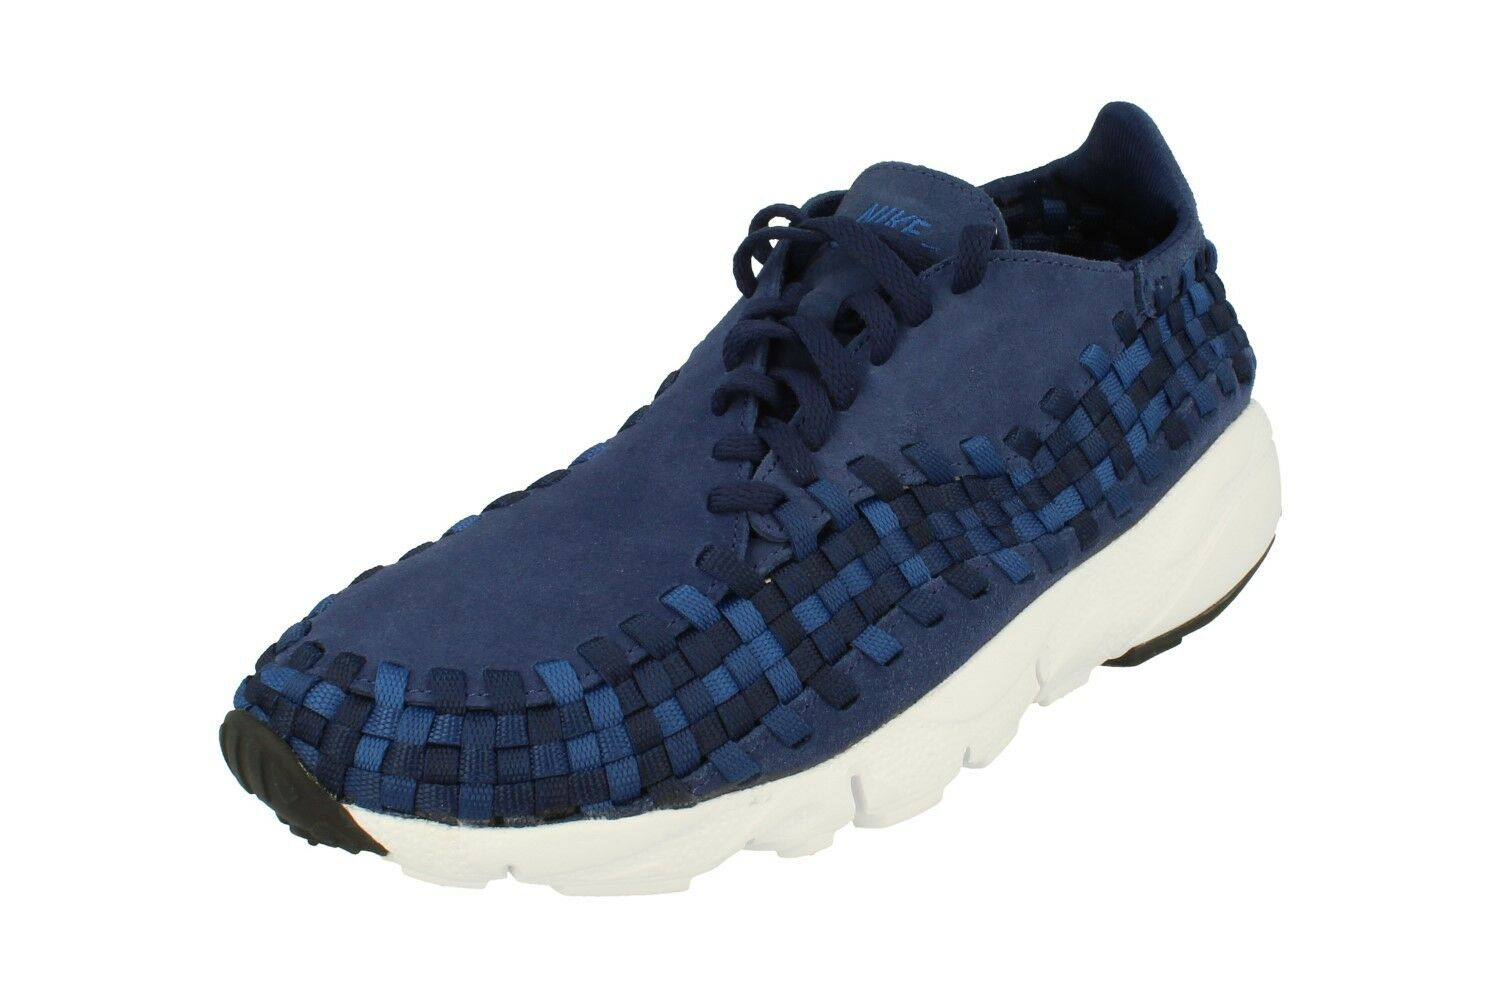 Nike Air Footscape Woven NM NM Woven   Herren Running Trainers 875797 Sneaker Schuhe 400 f3dc9f